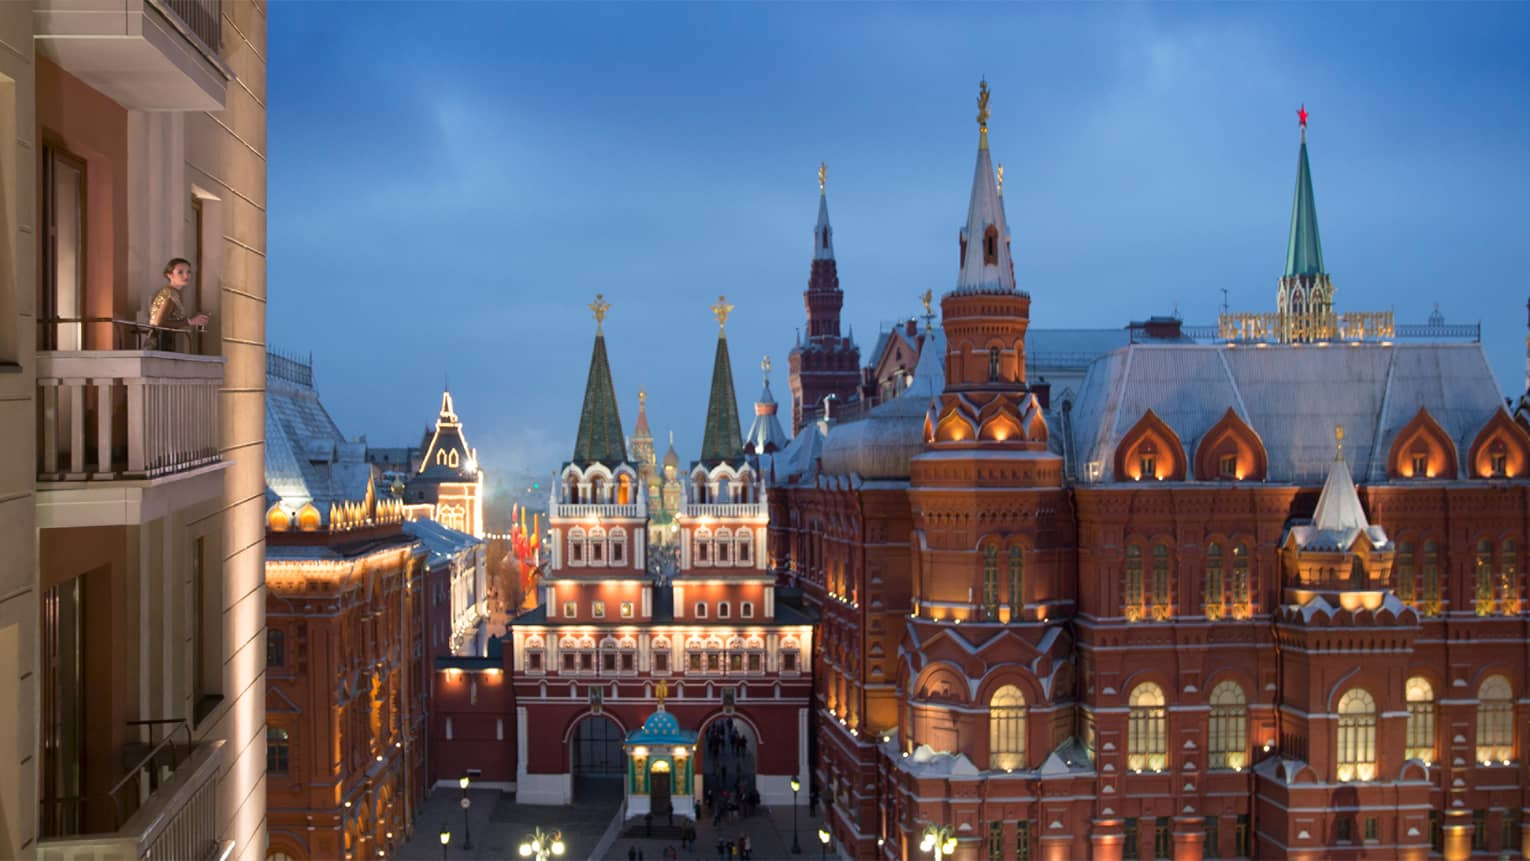 Woman stands on hotel balcony at night, looks out at Red Square historic buildings and lights